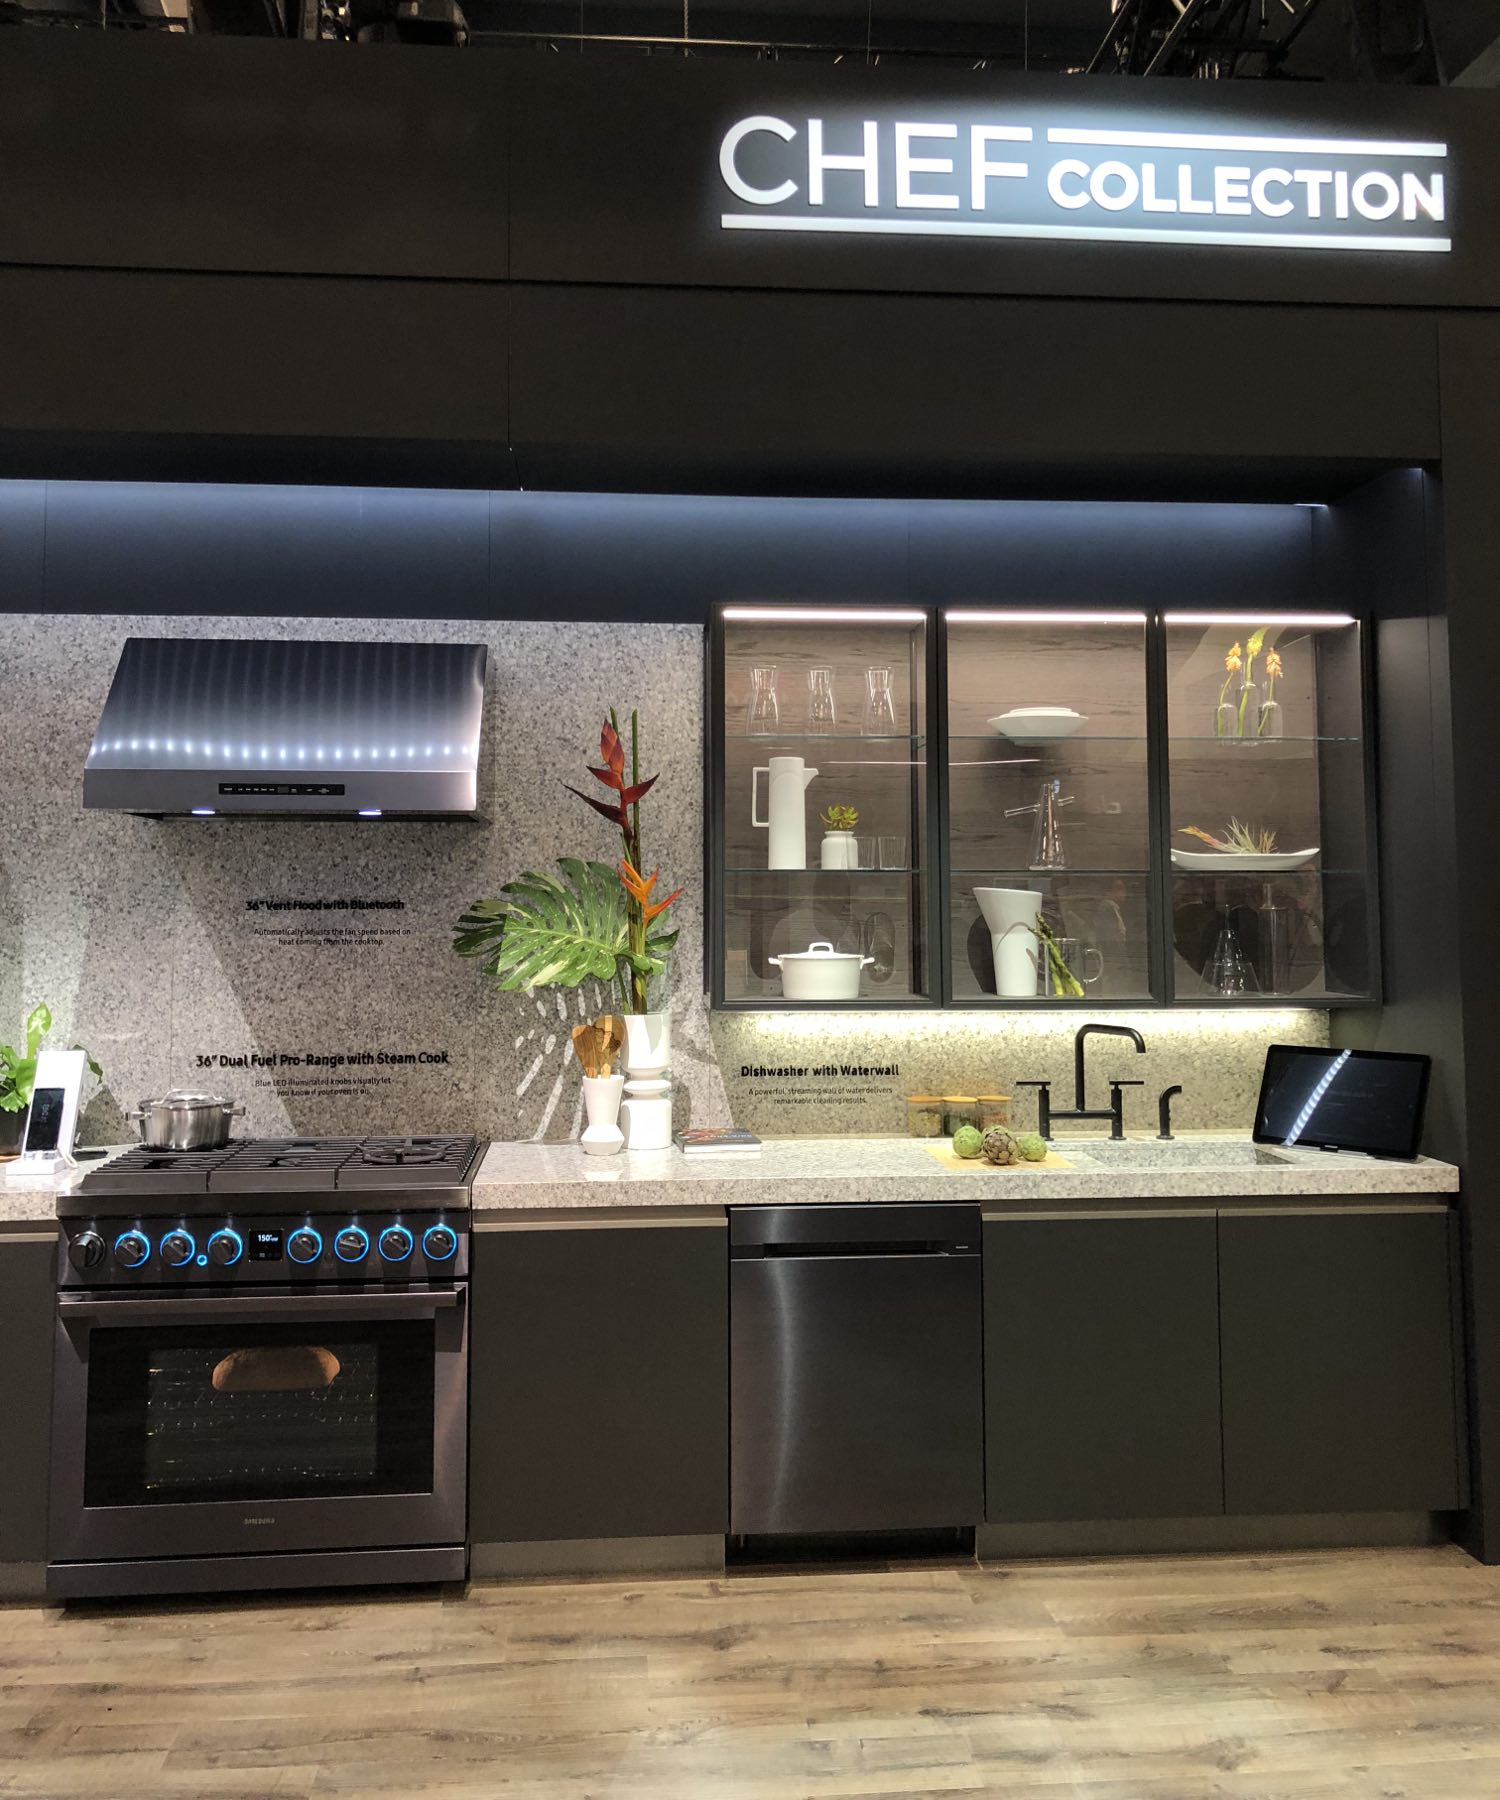 Samsung Chef Collection - Display